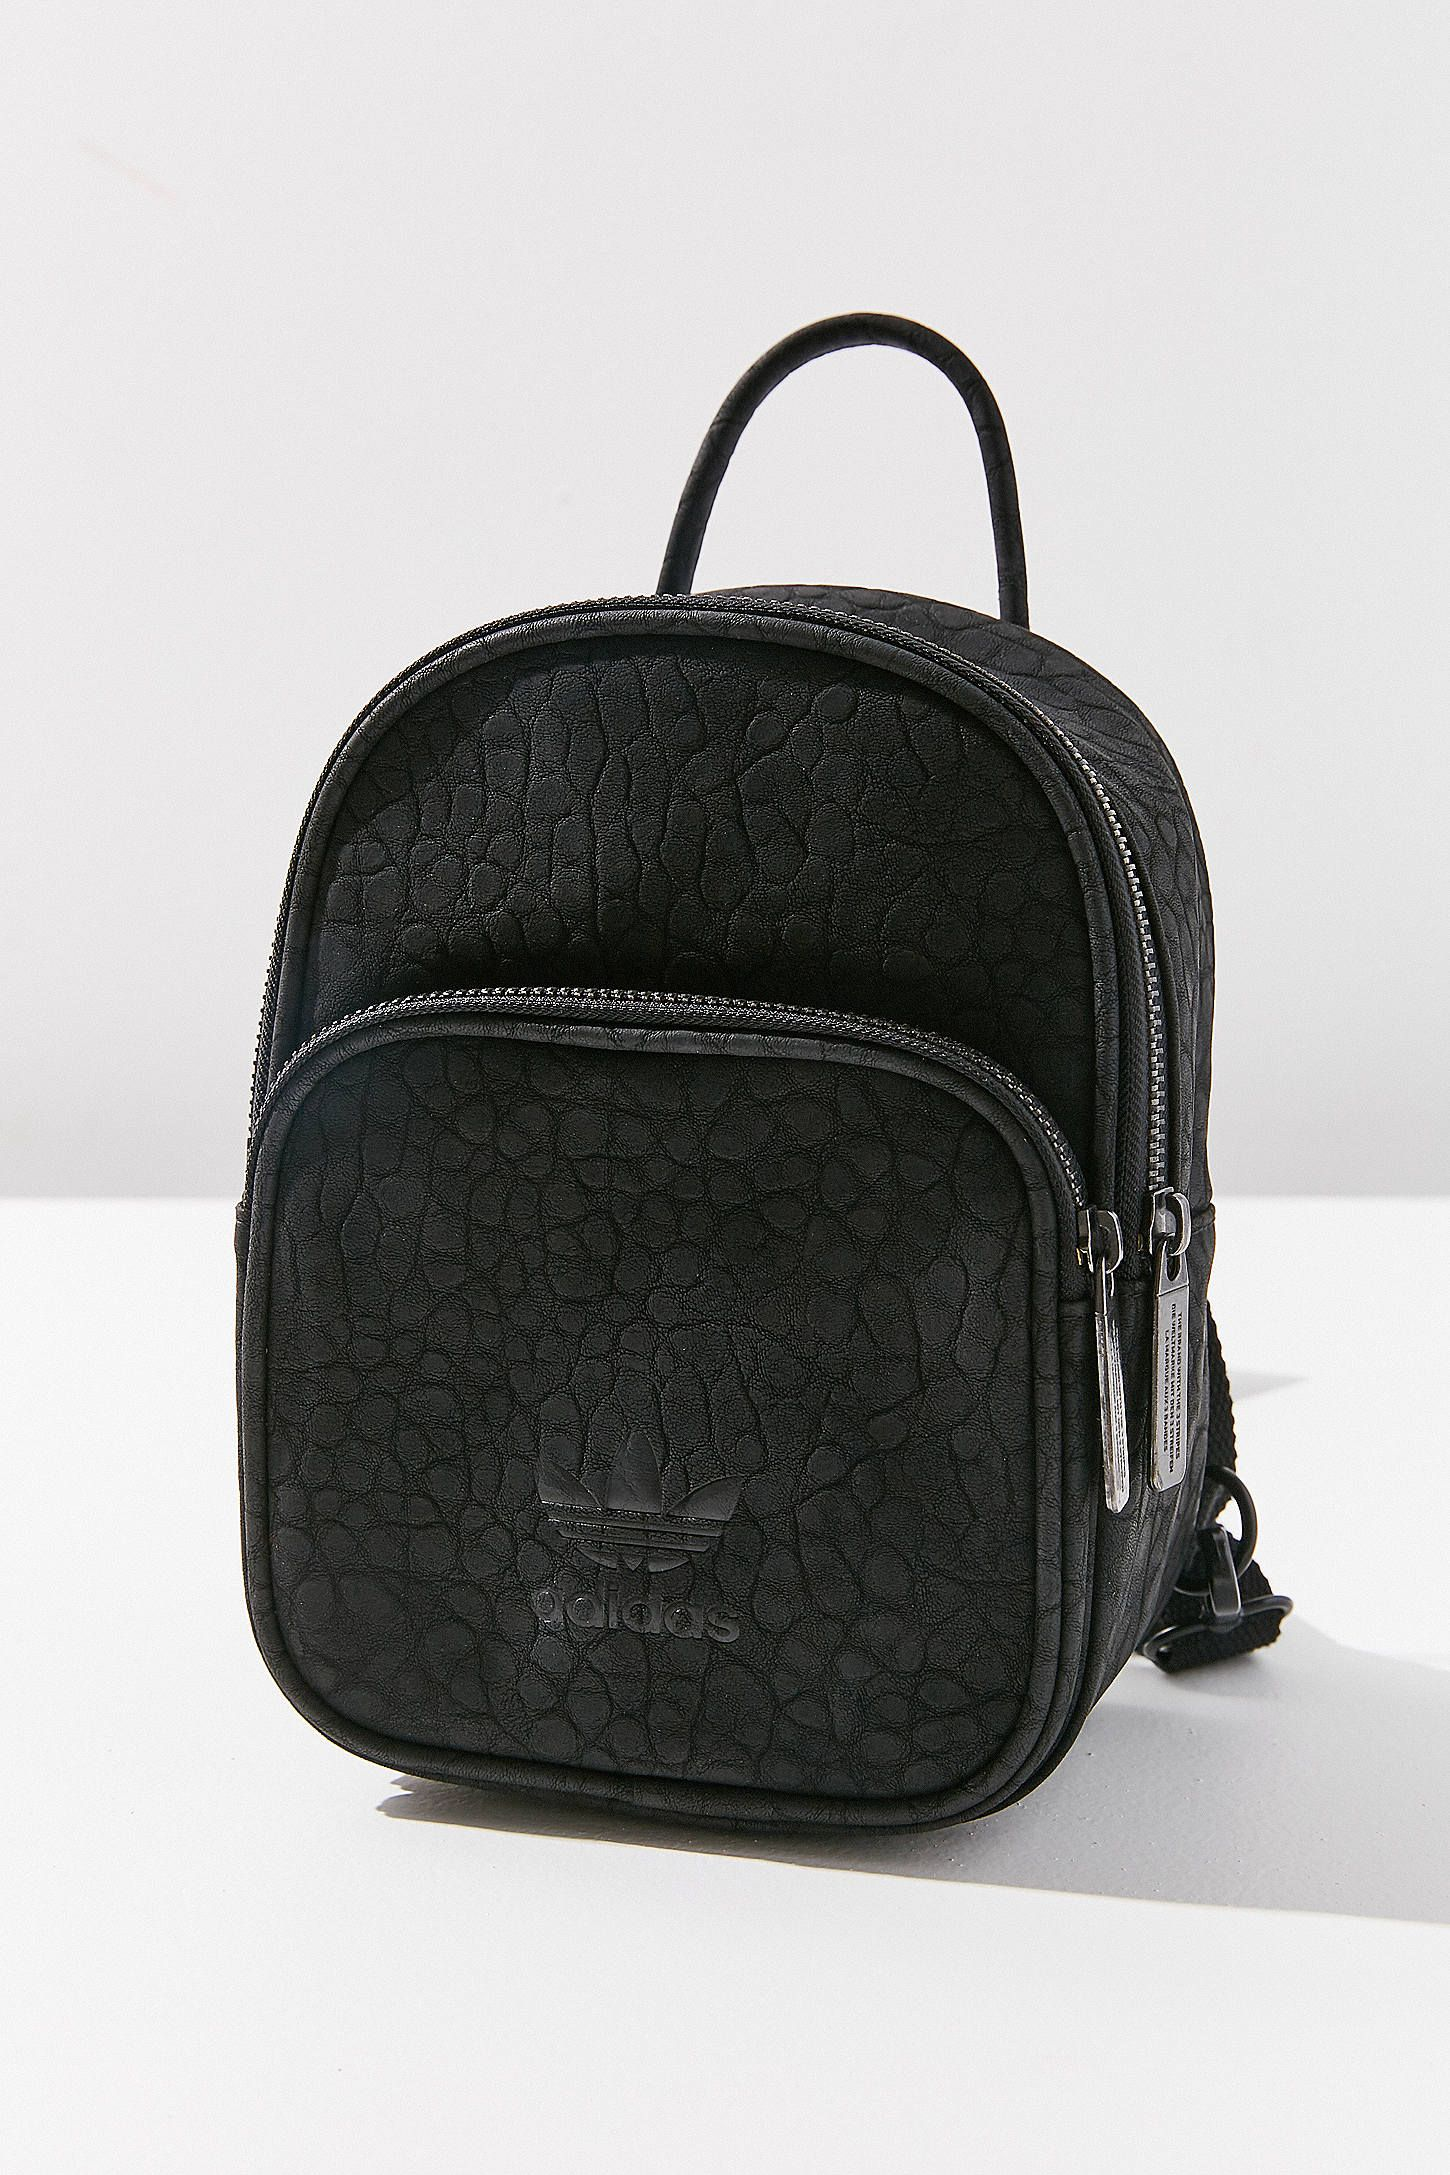 d35d634979 adidas Originals Classic Mini Faux Leather Backpack